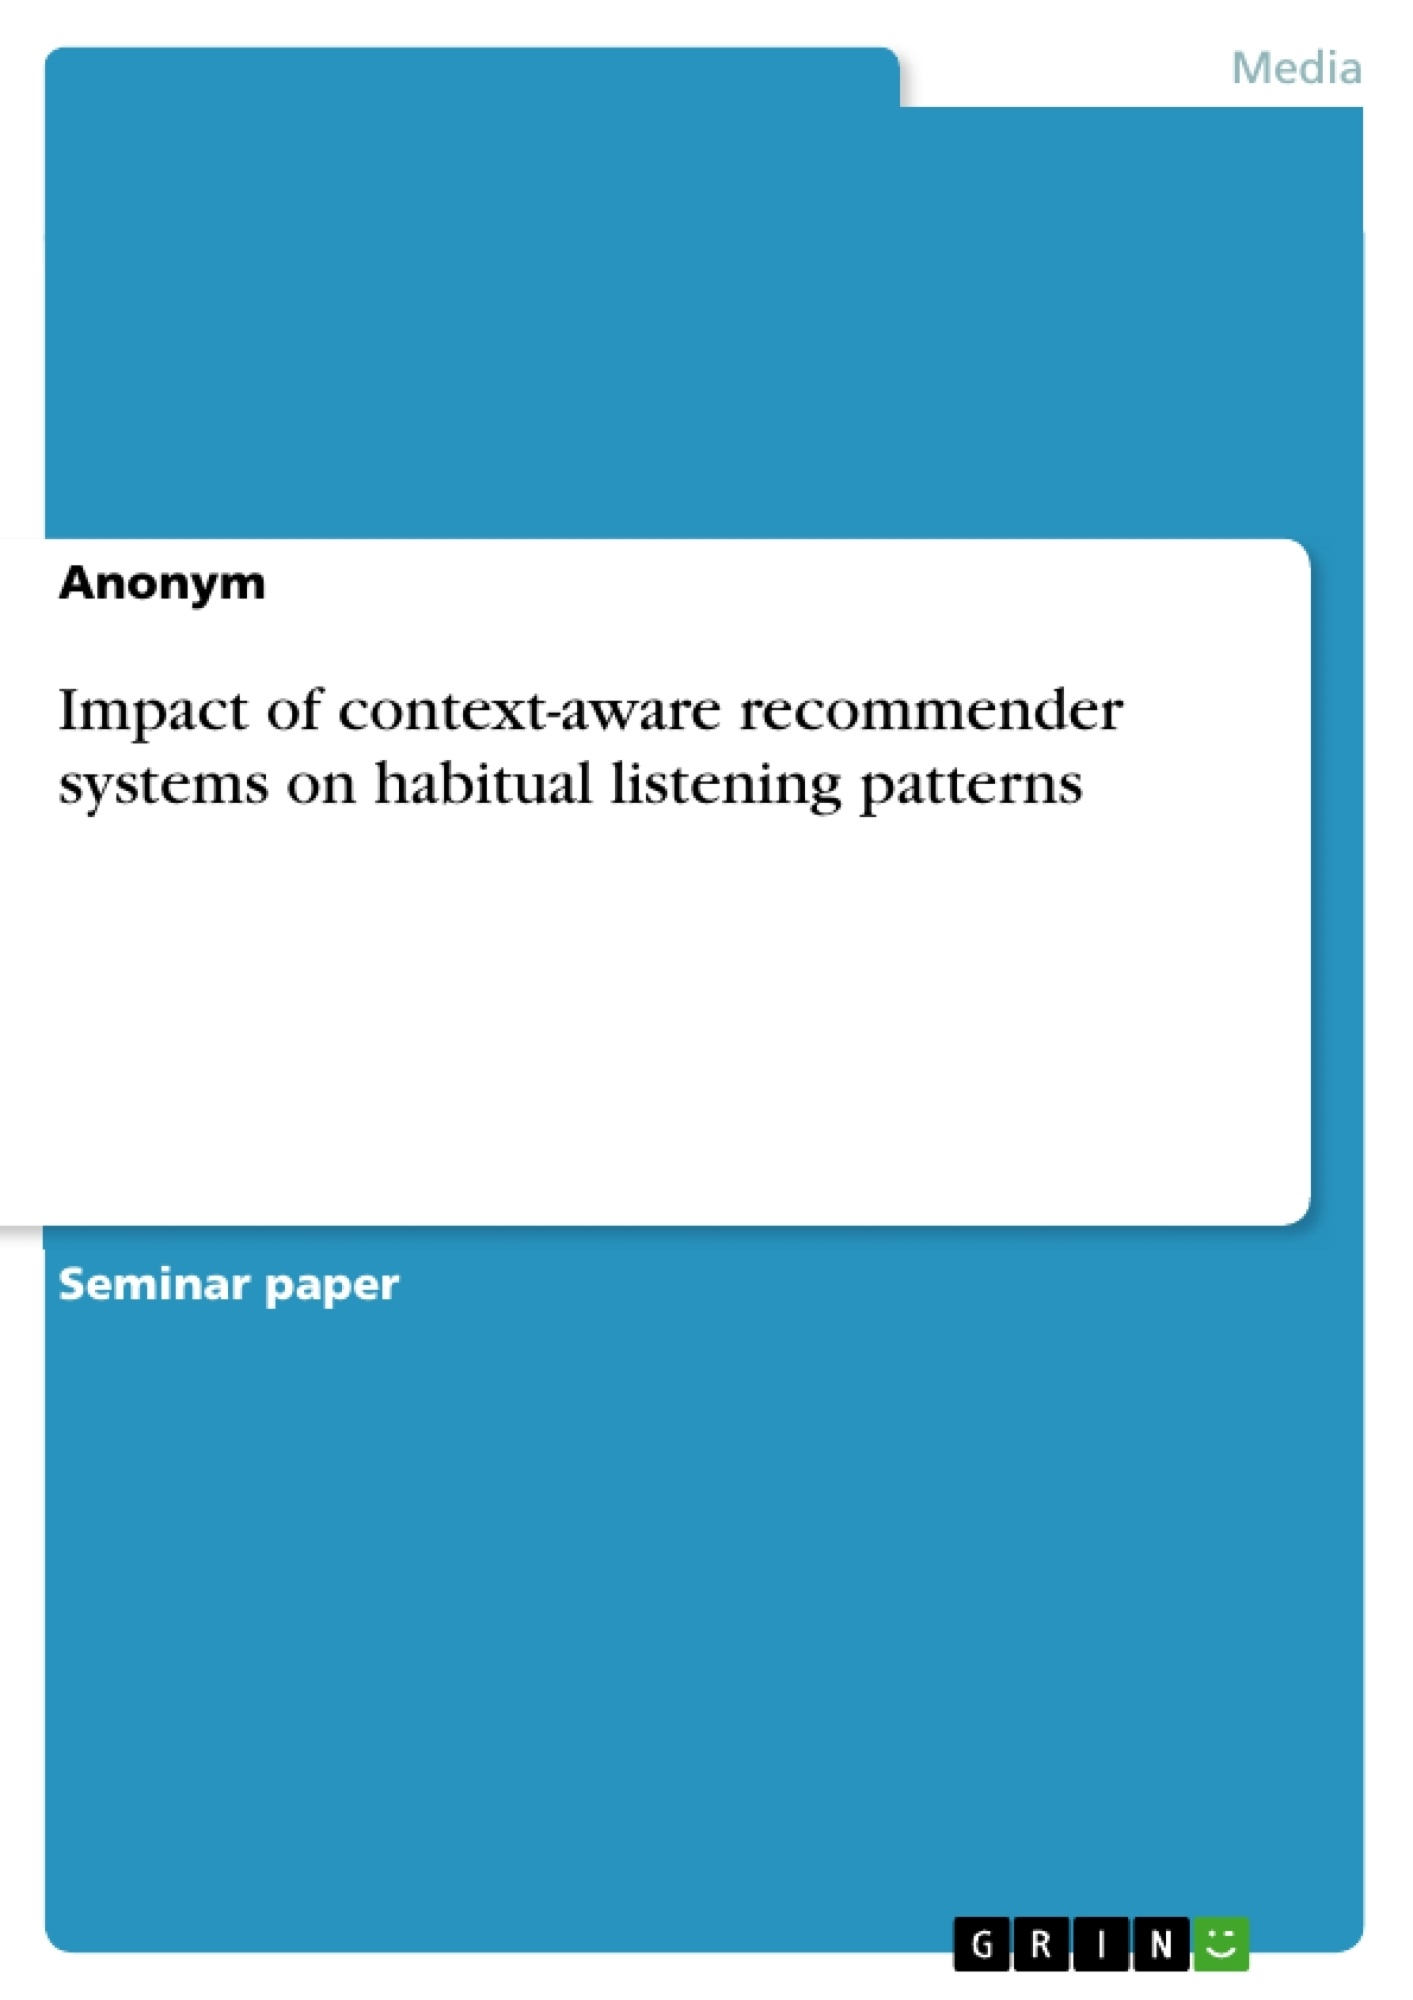 Title: Impact of context-aware recommender systems on habitual listening patterns